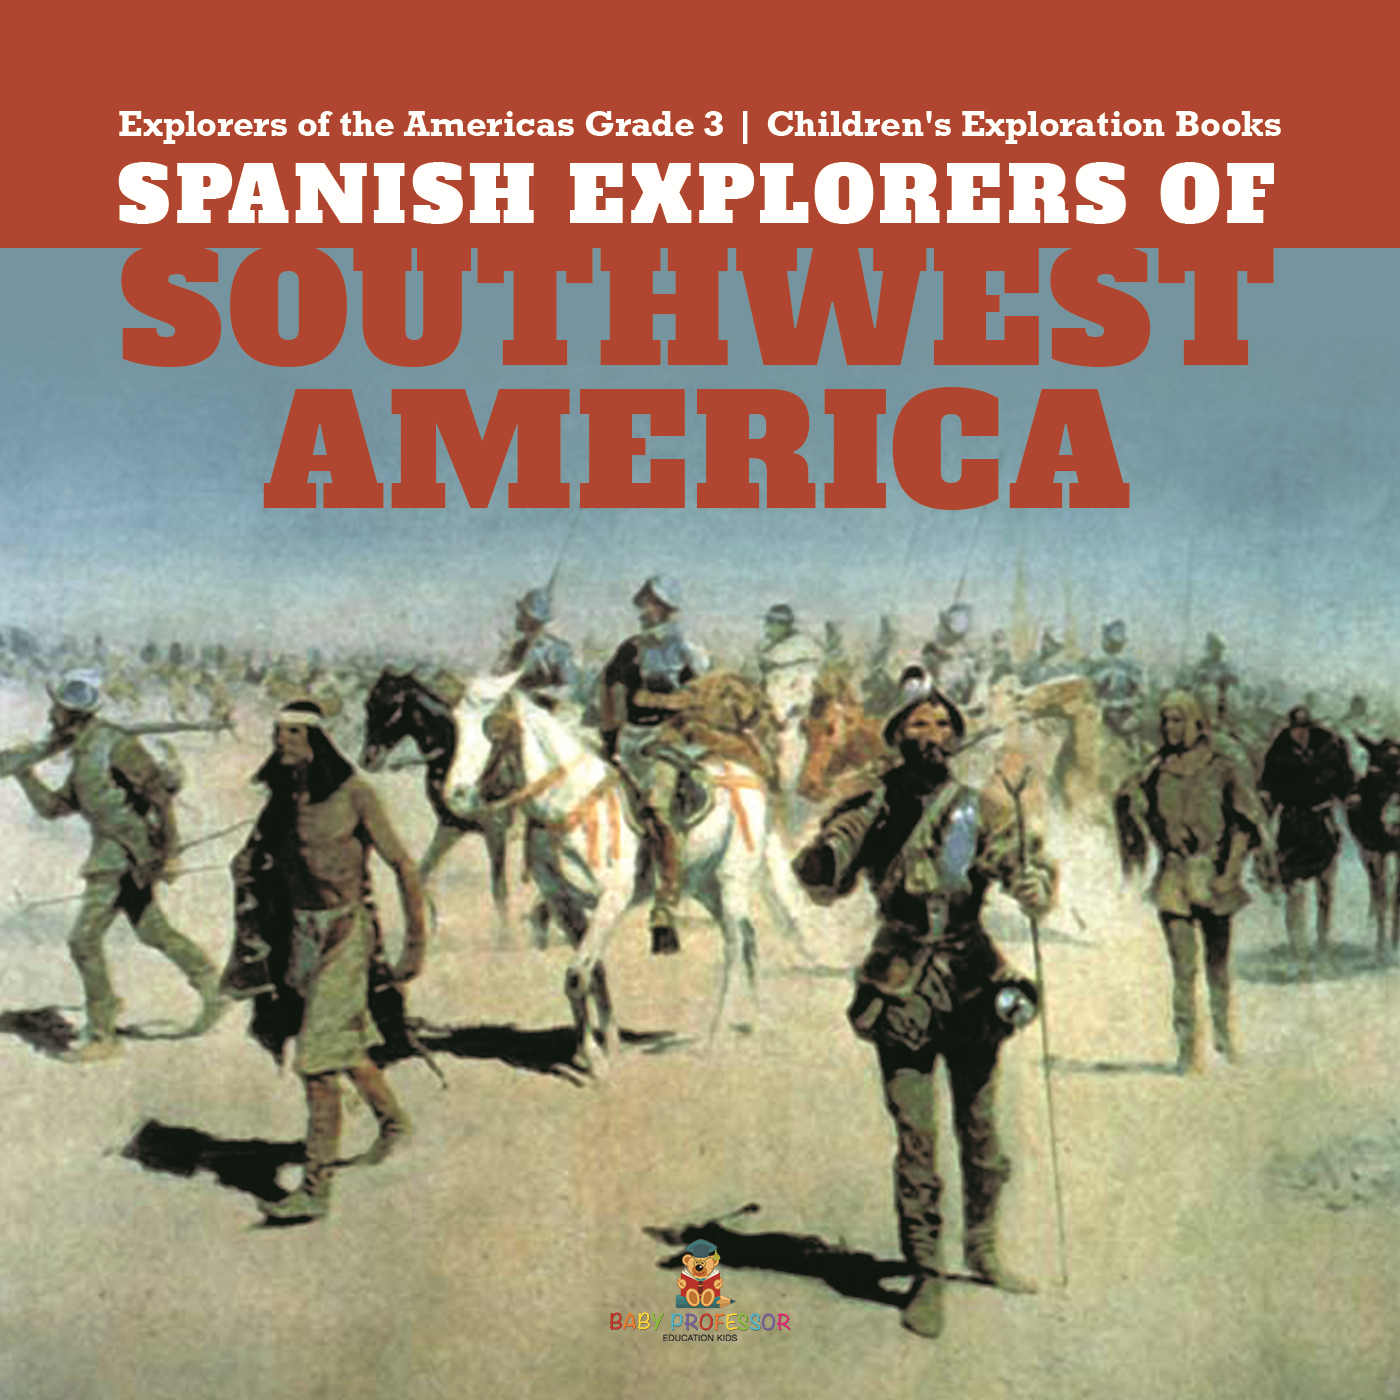 Spanish Explorers of Southwest America | Explorers of the Americas Grade 3 | Children's Exploration Books